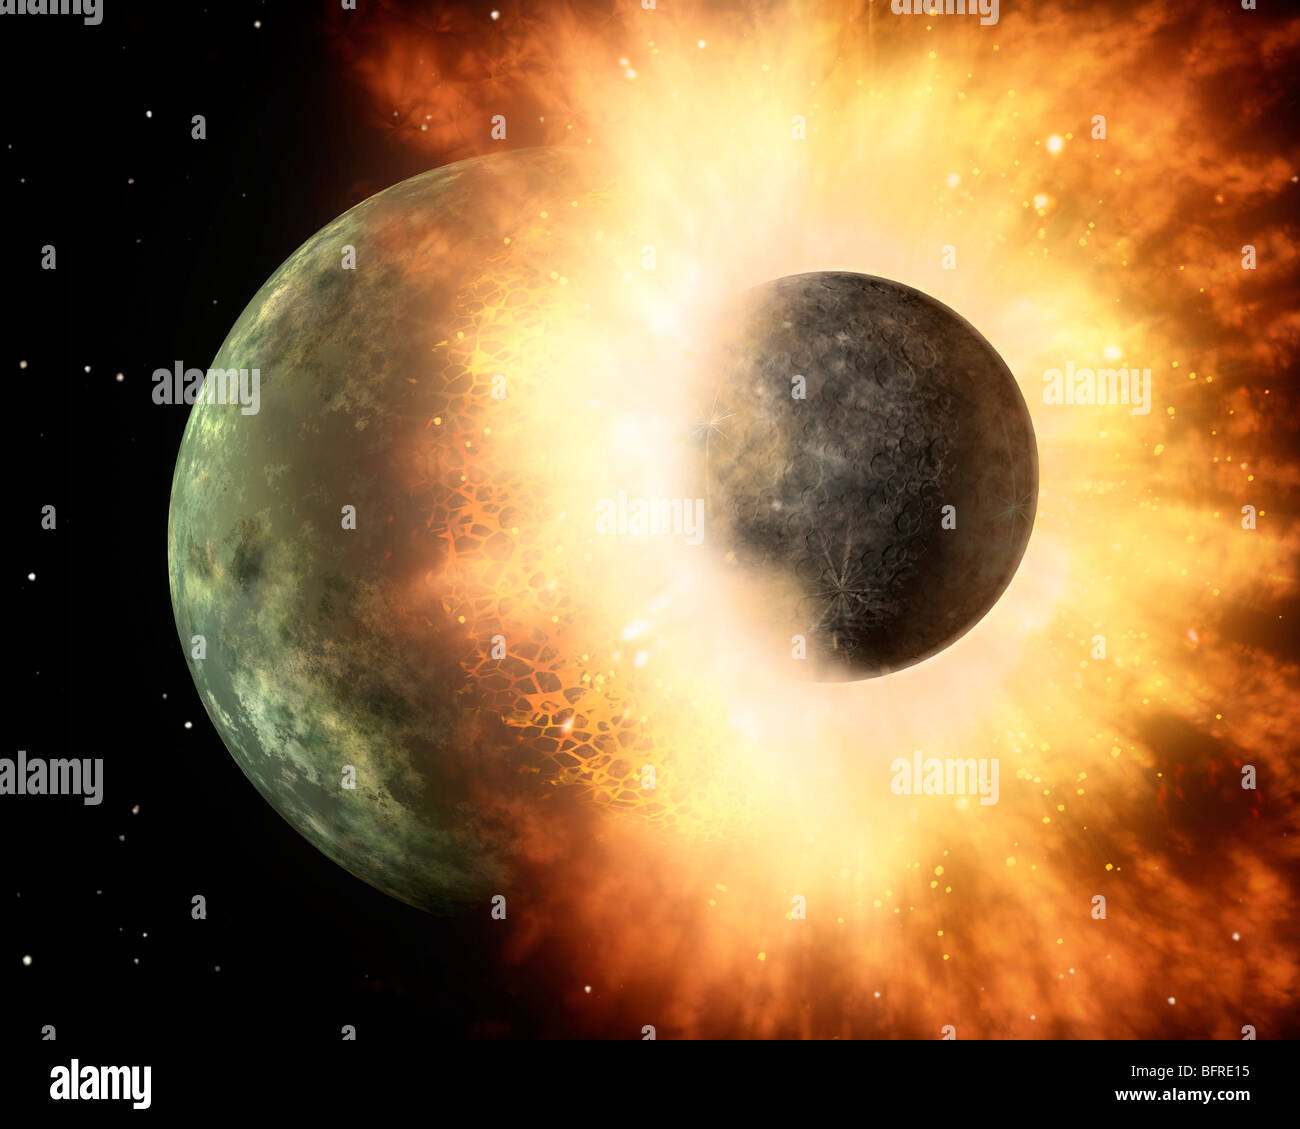 Artist's concept of a celestial body colliding into a planet sized body. - Stock Image